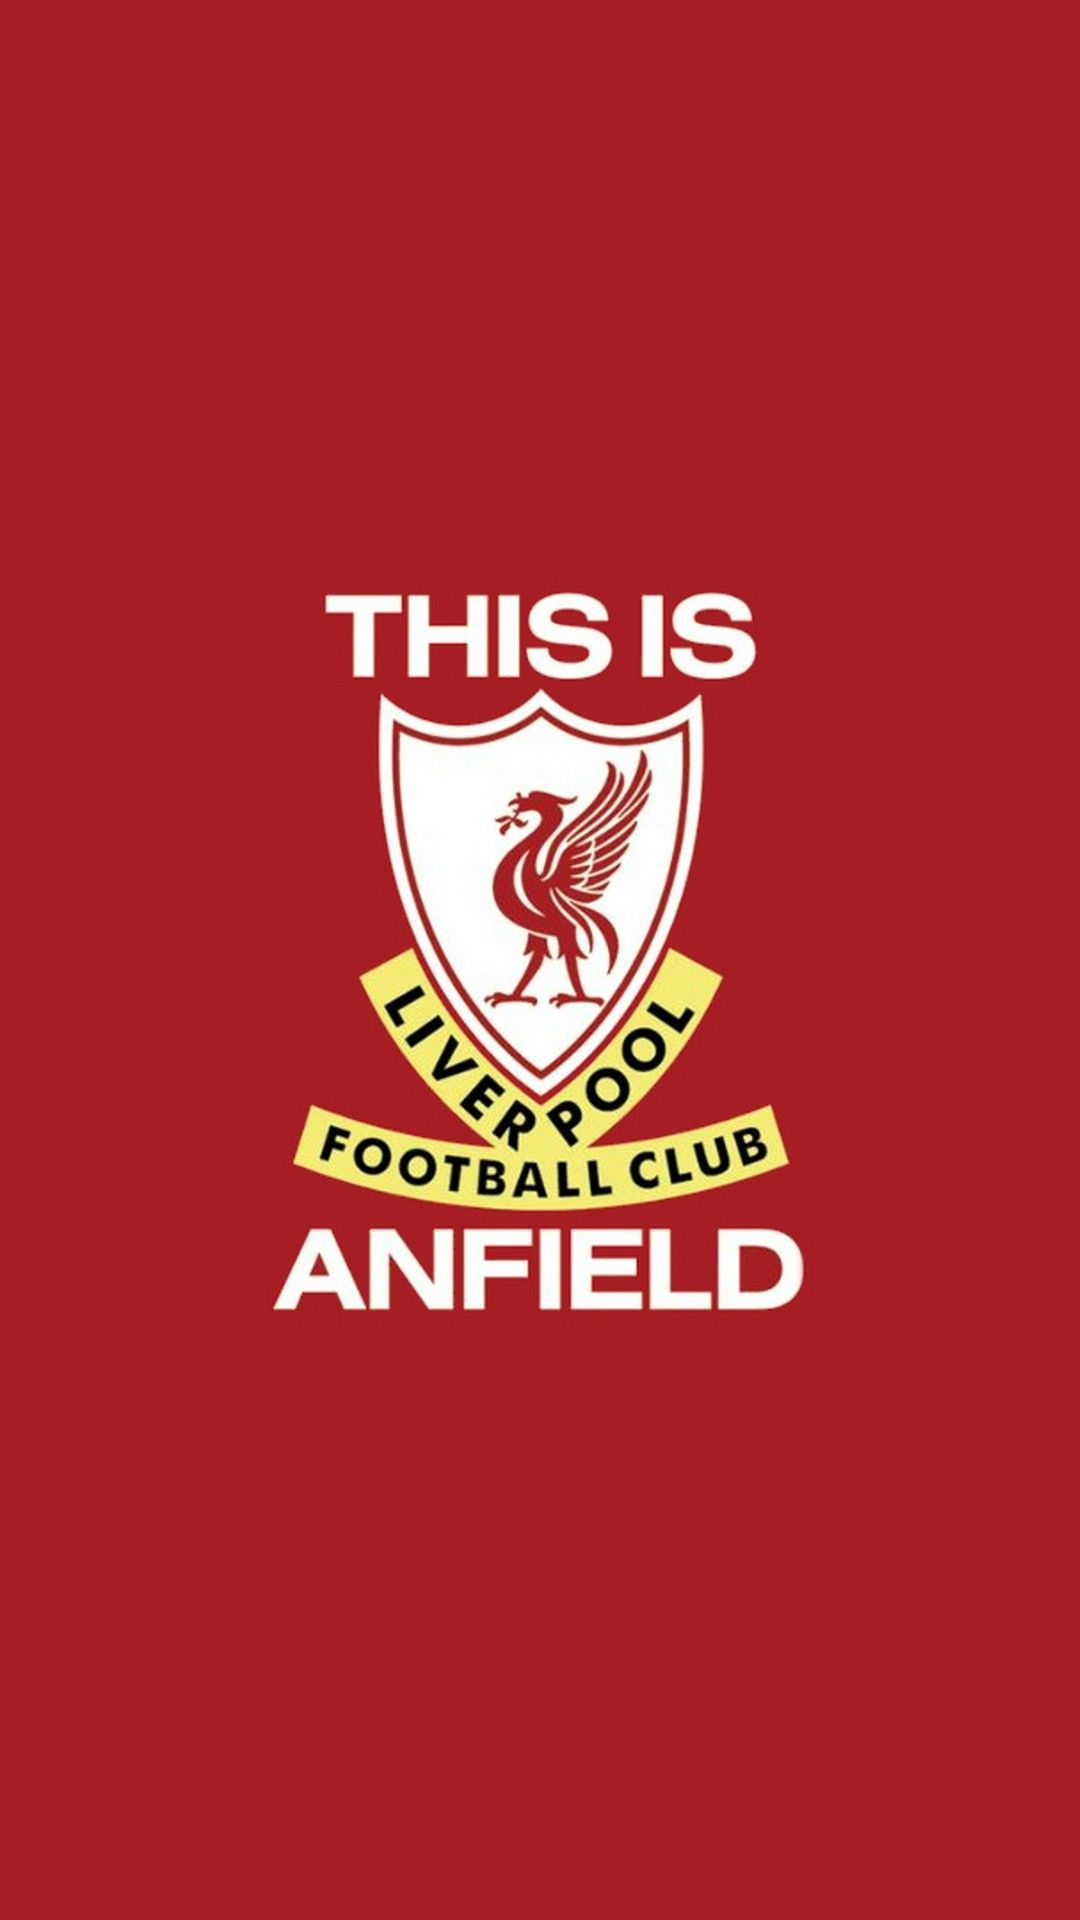 Liverpool Wallpaper Mobile Best Football Wallpaper Hd Liverpool Wallpapers Liverpool Football Club Wallpapers Iphone Wallpaper Liverpool